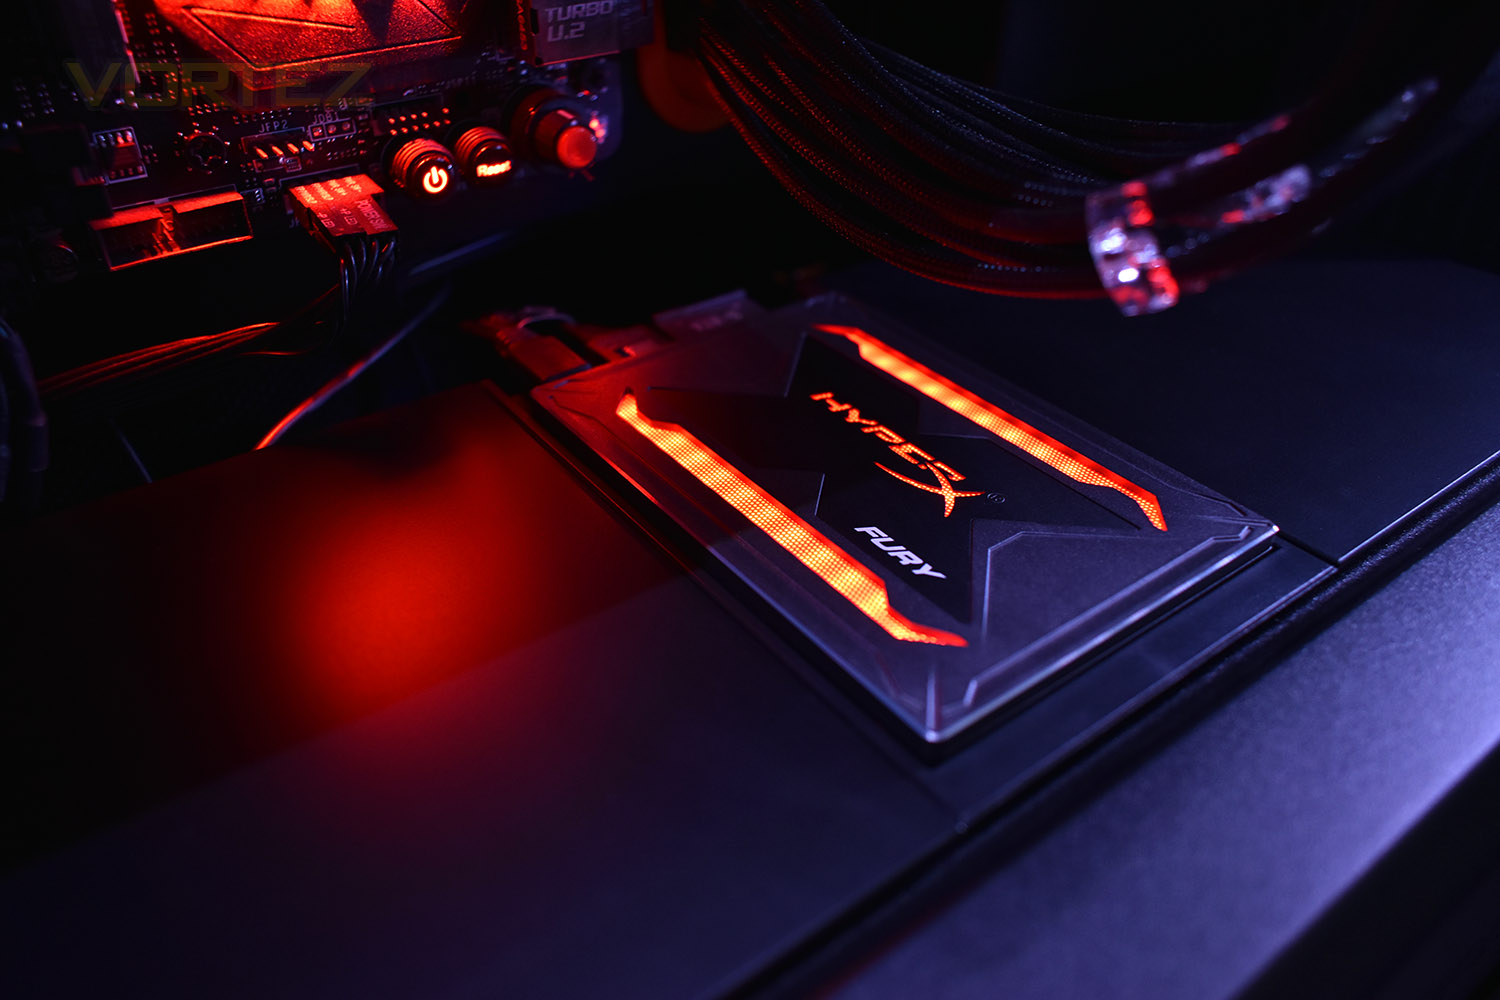 HyperX FURY RGB Review - Introduction